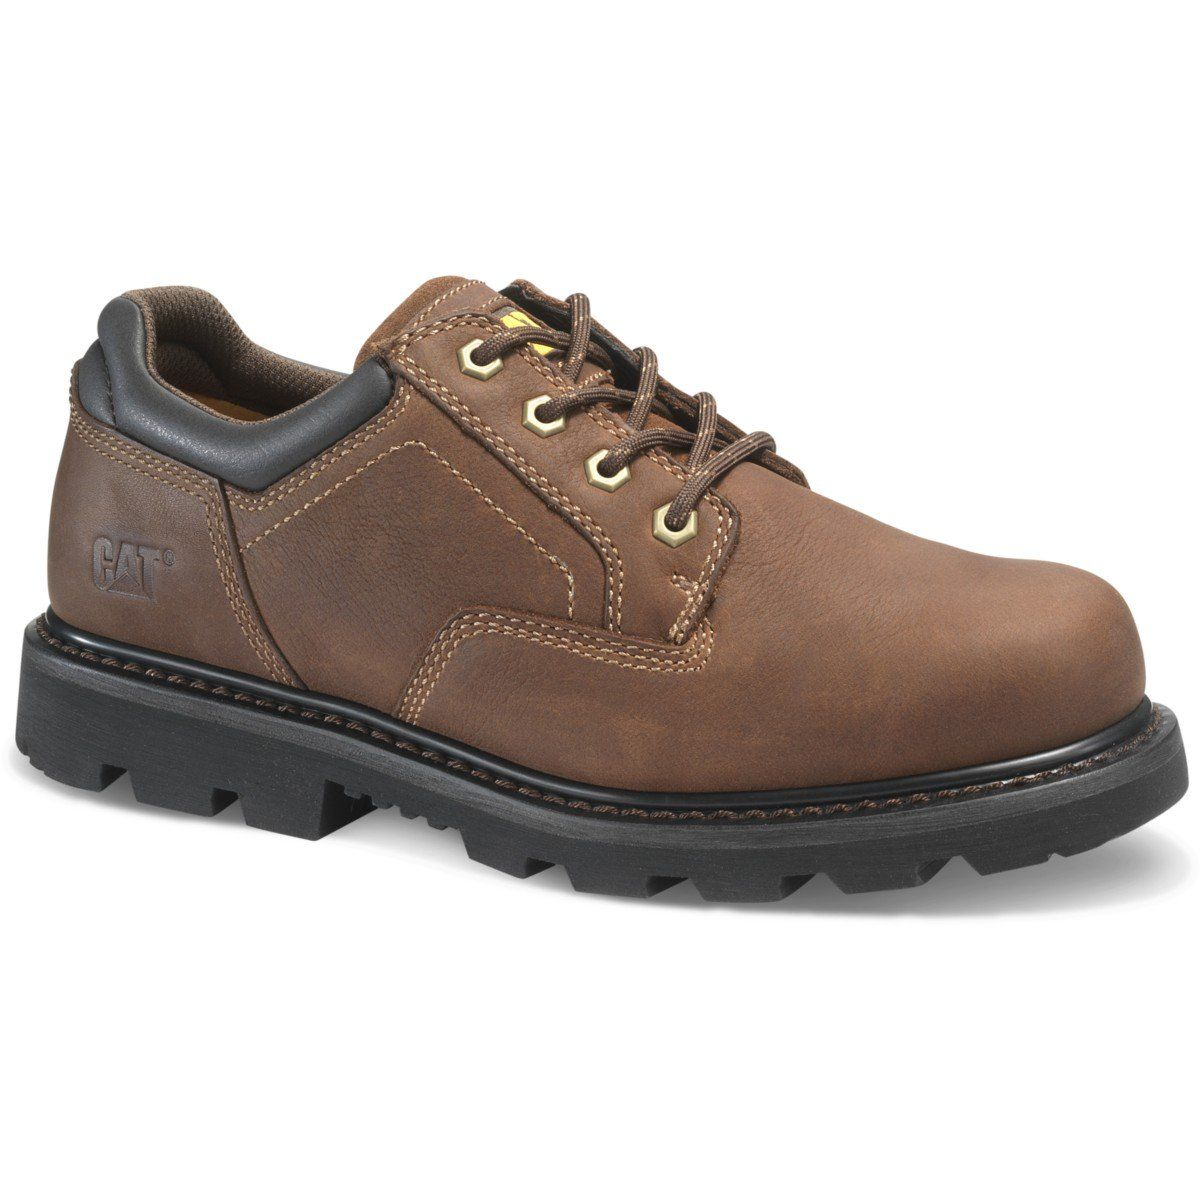 Caterpillar P74133 Ridgemont 2 0 Work Shoe Men's Cat Footwear Black  7 Medium is part of Steel toe work shoes - 75 EH Electrical Hazard Protection rated to protect against open circuits up to 600 volts in dry conditions  Goodyear Welt Construction provides maximum durability while offering forefoot flexibility  Full Grain Leather Upper delivers longterm durability and protection